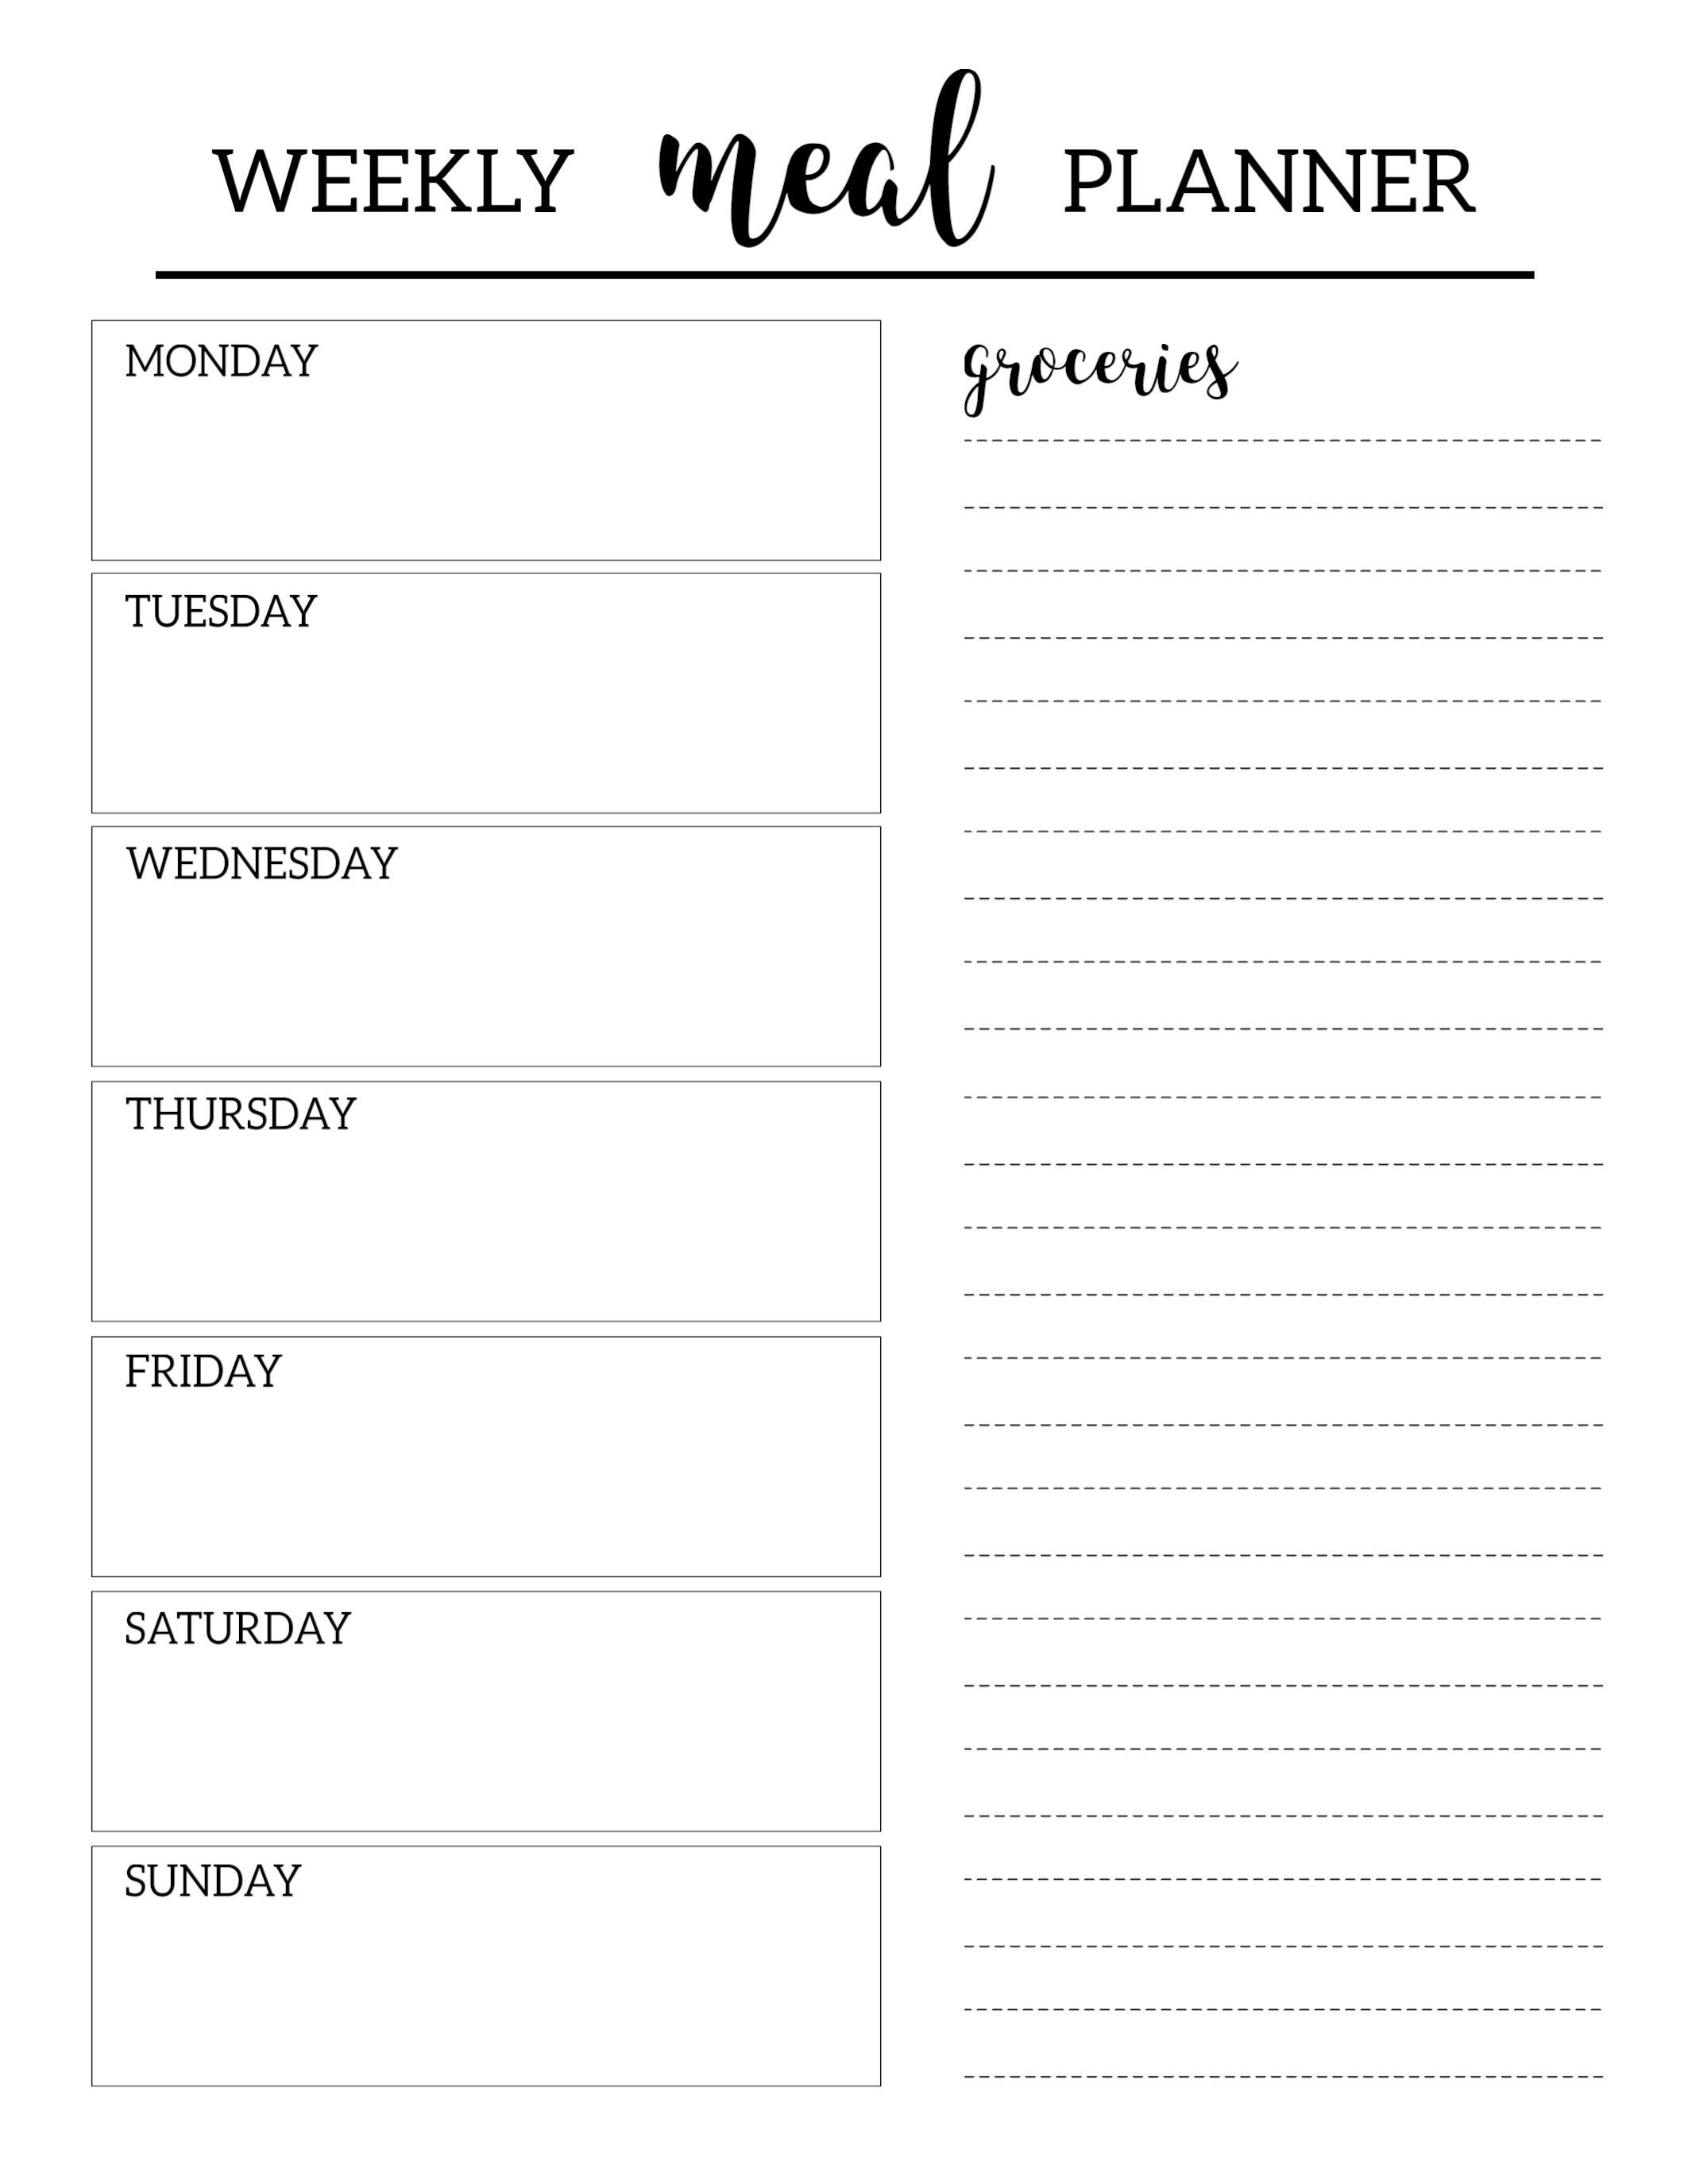 000 Surprising Free Meal Plan Template Design  Templates Easy Keto Printable Planner For Weight LosFull